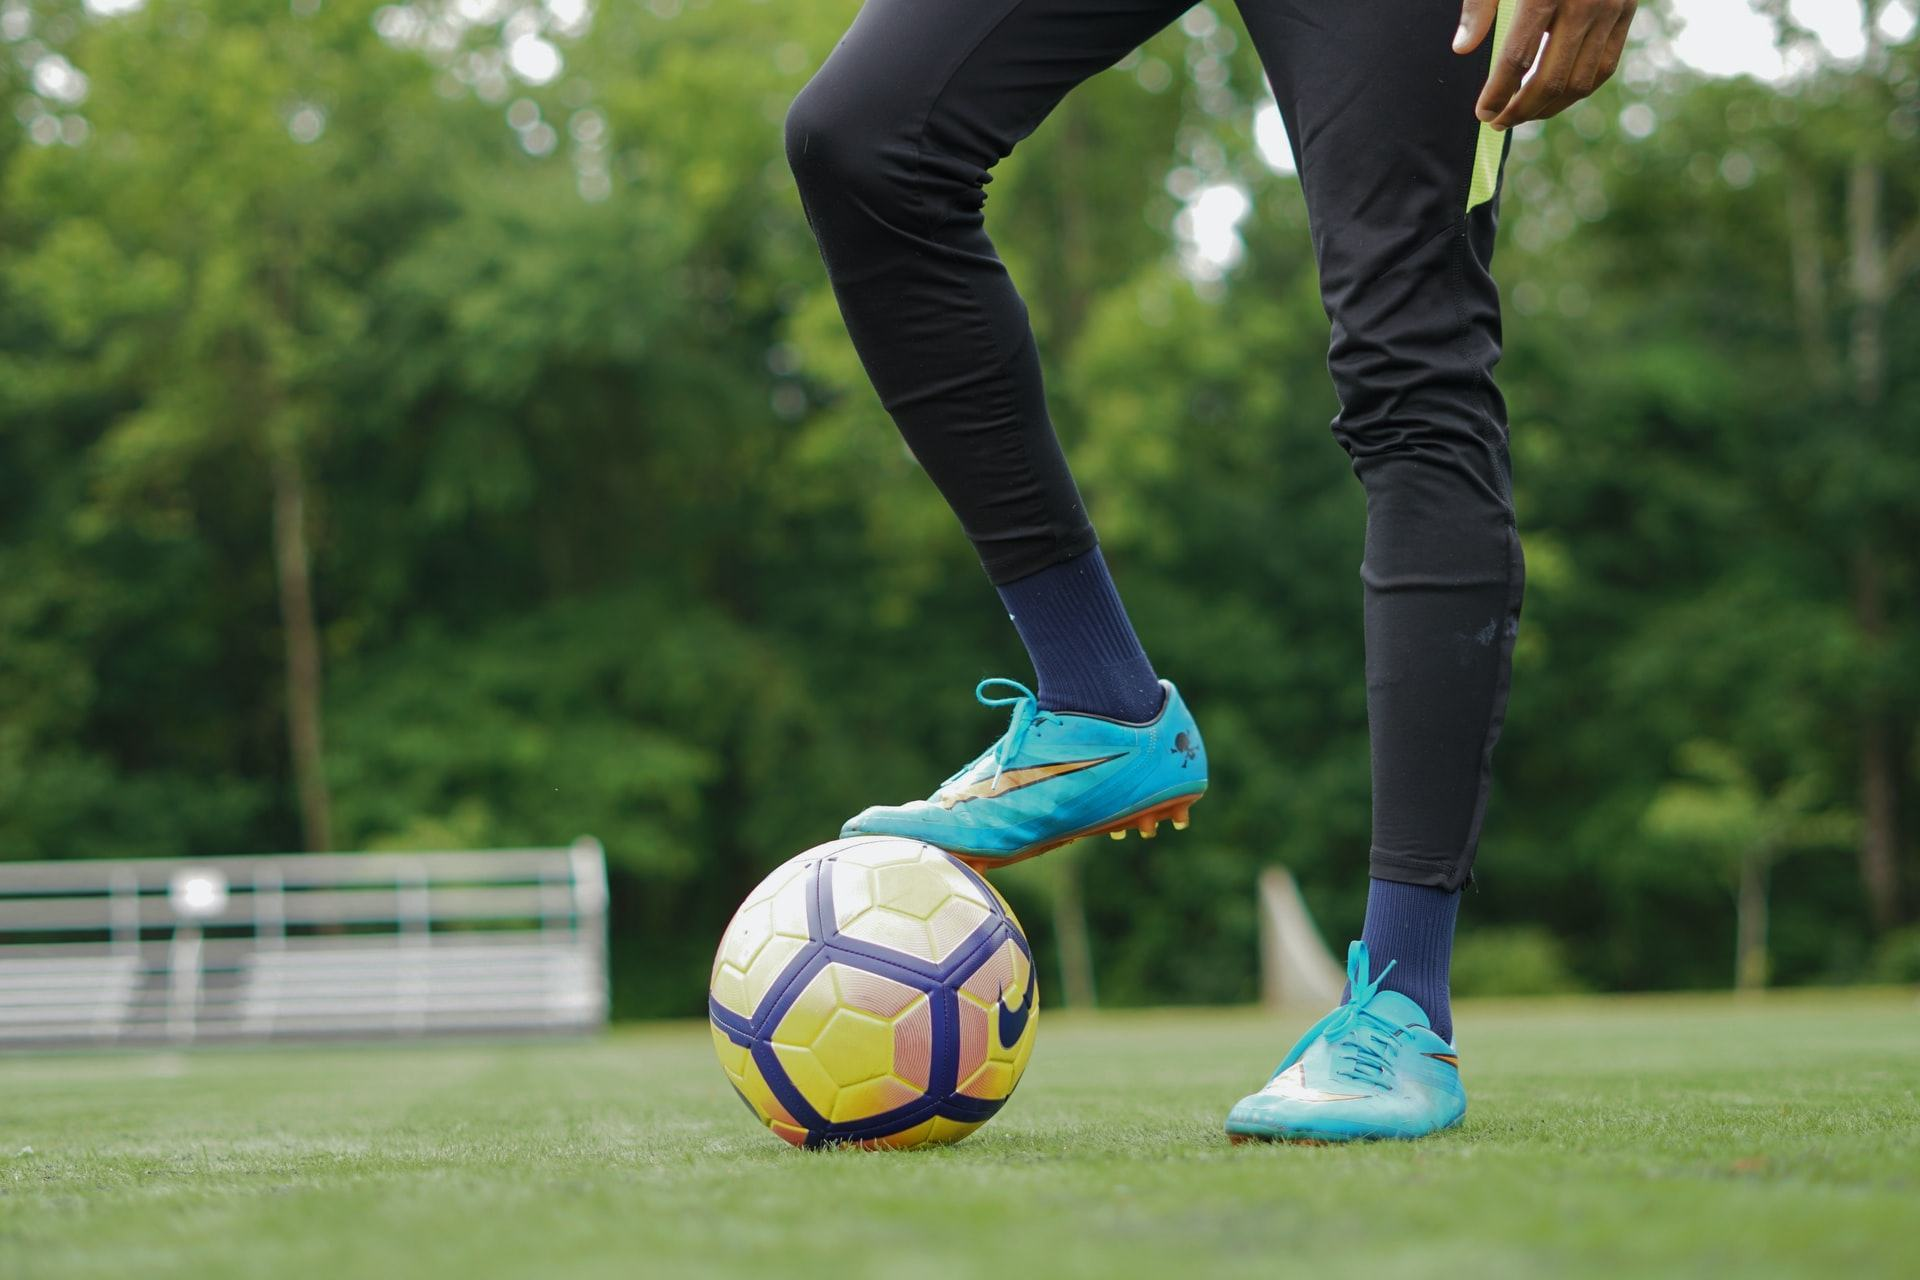 Some questions about the best soccer cleat